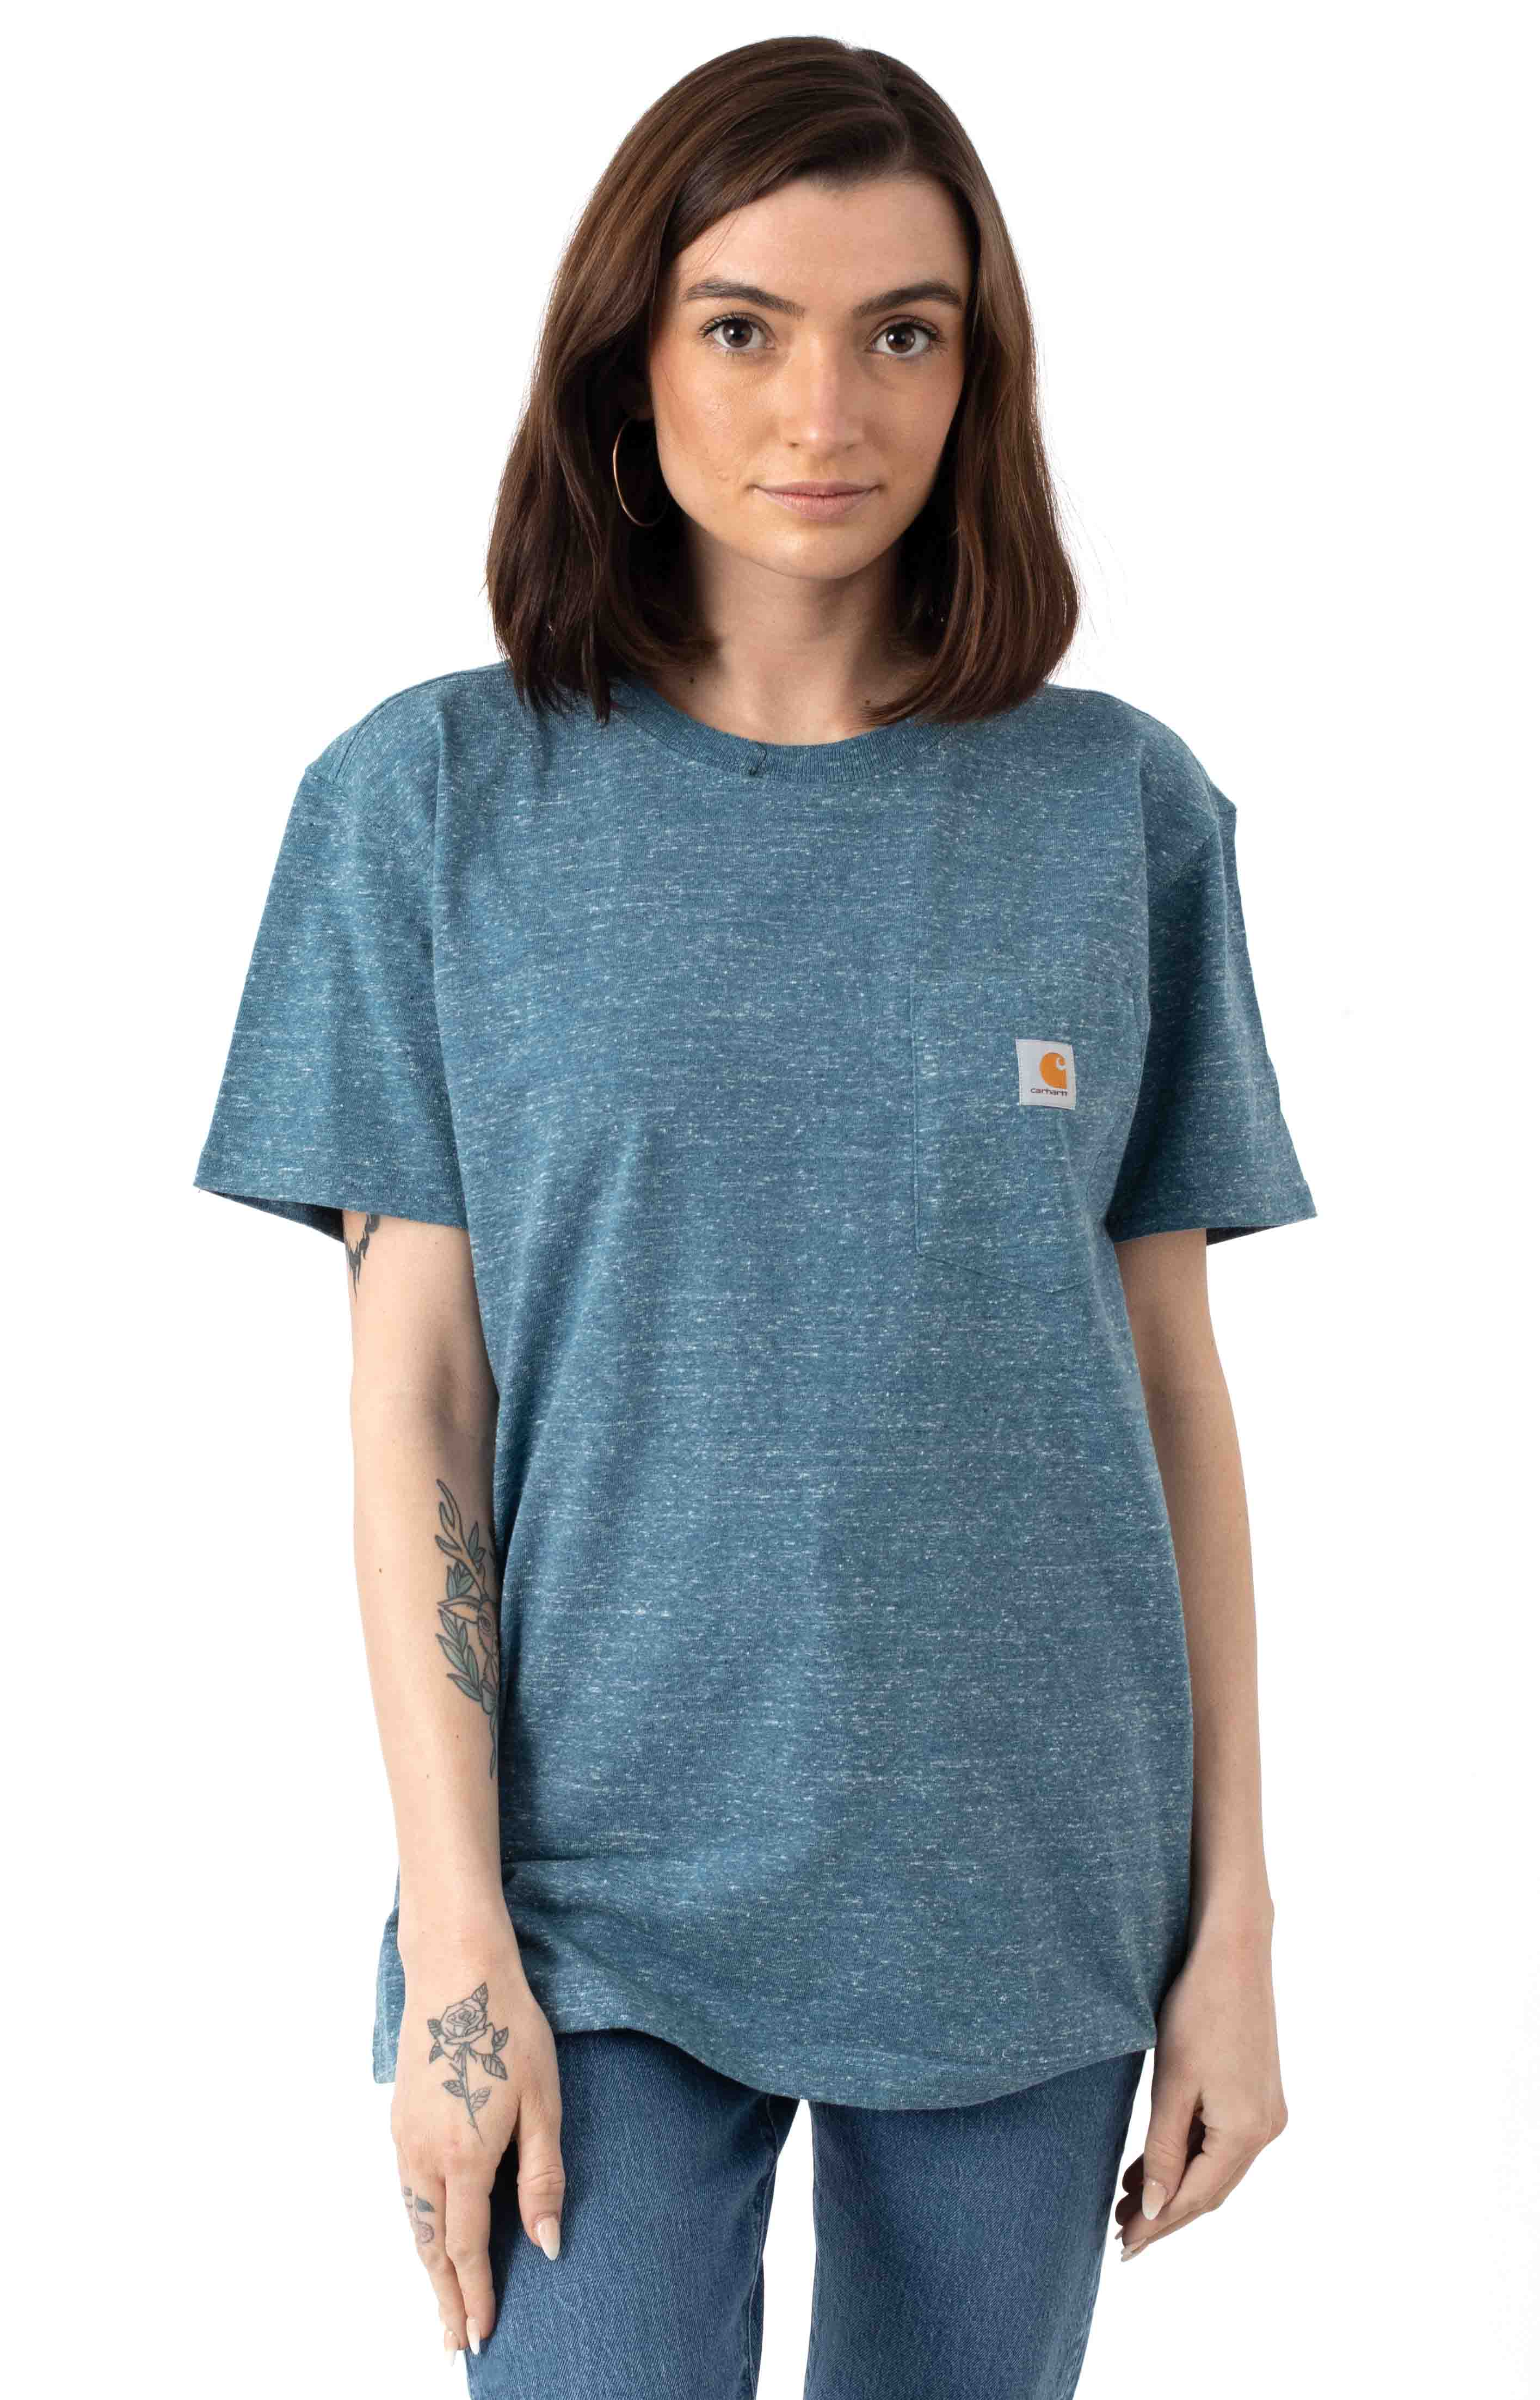 (103067) WK87 Workwear Pocket T-Shirt - Ocean Blue Snow Heather